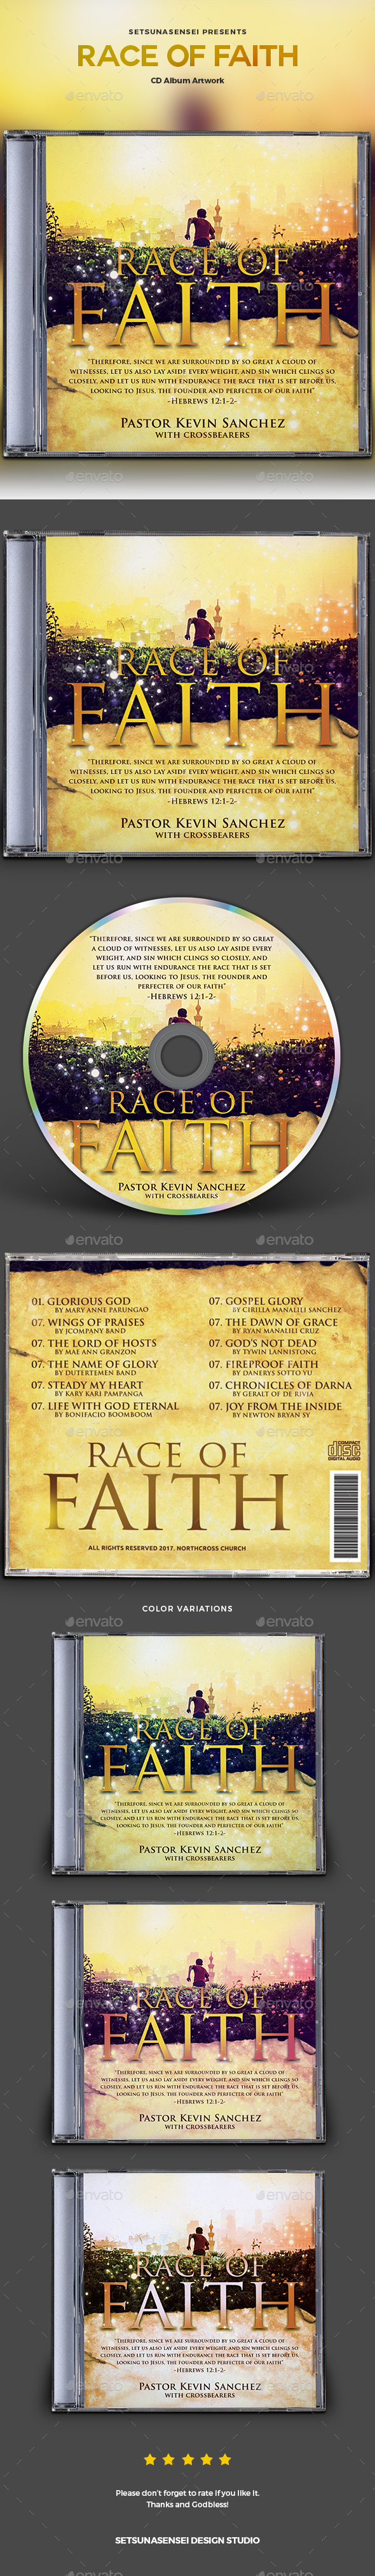 Race of Faith CD Album Artwork - CD & DVD Artwork Print Templates